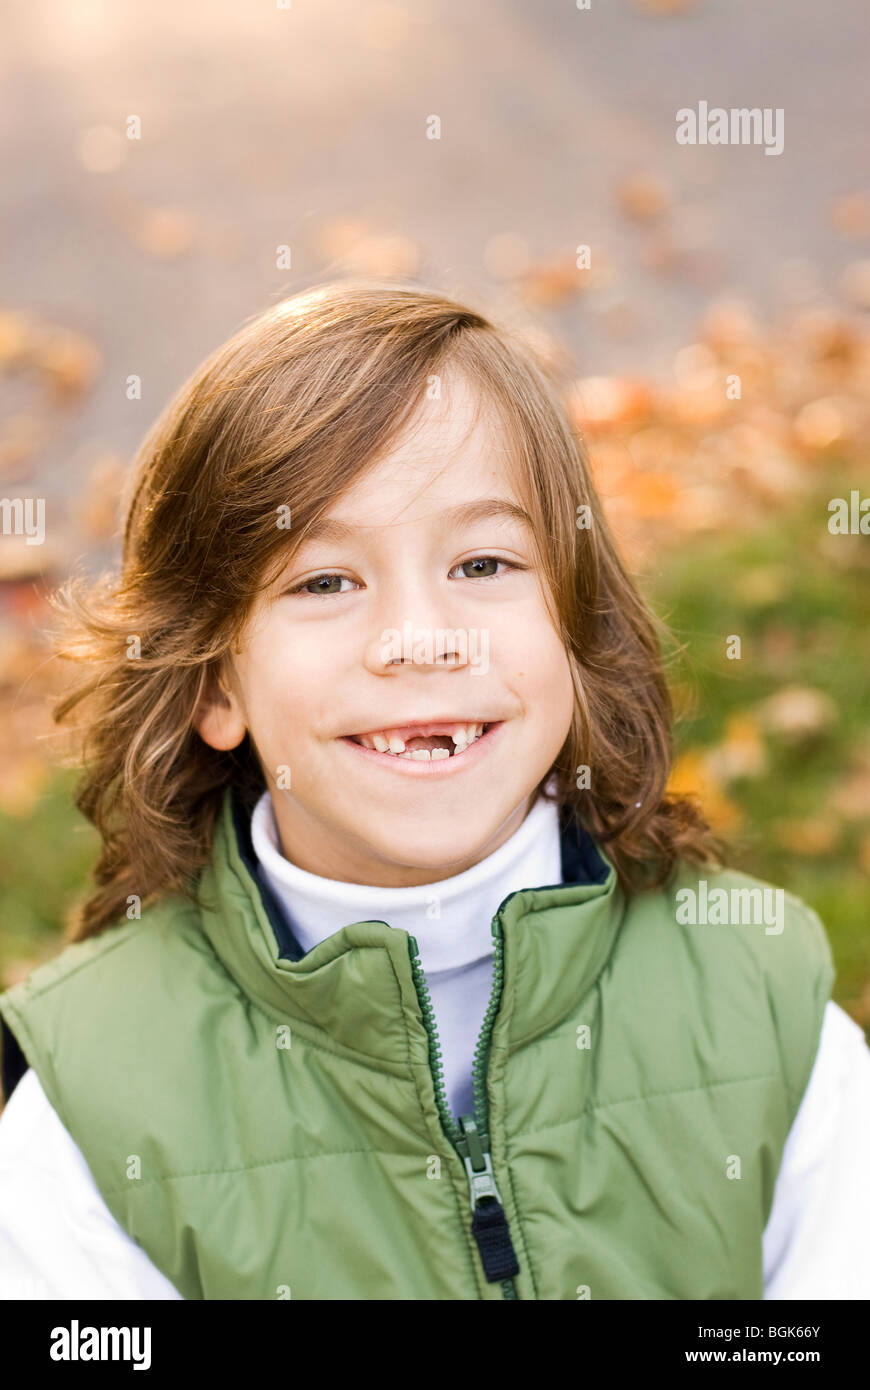 boy with missing teeth smiling - Stock Image